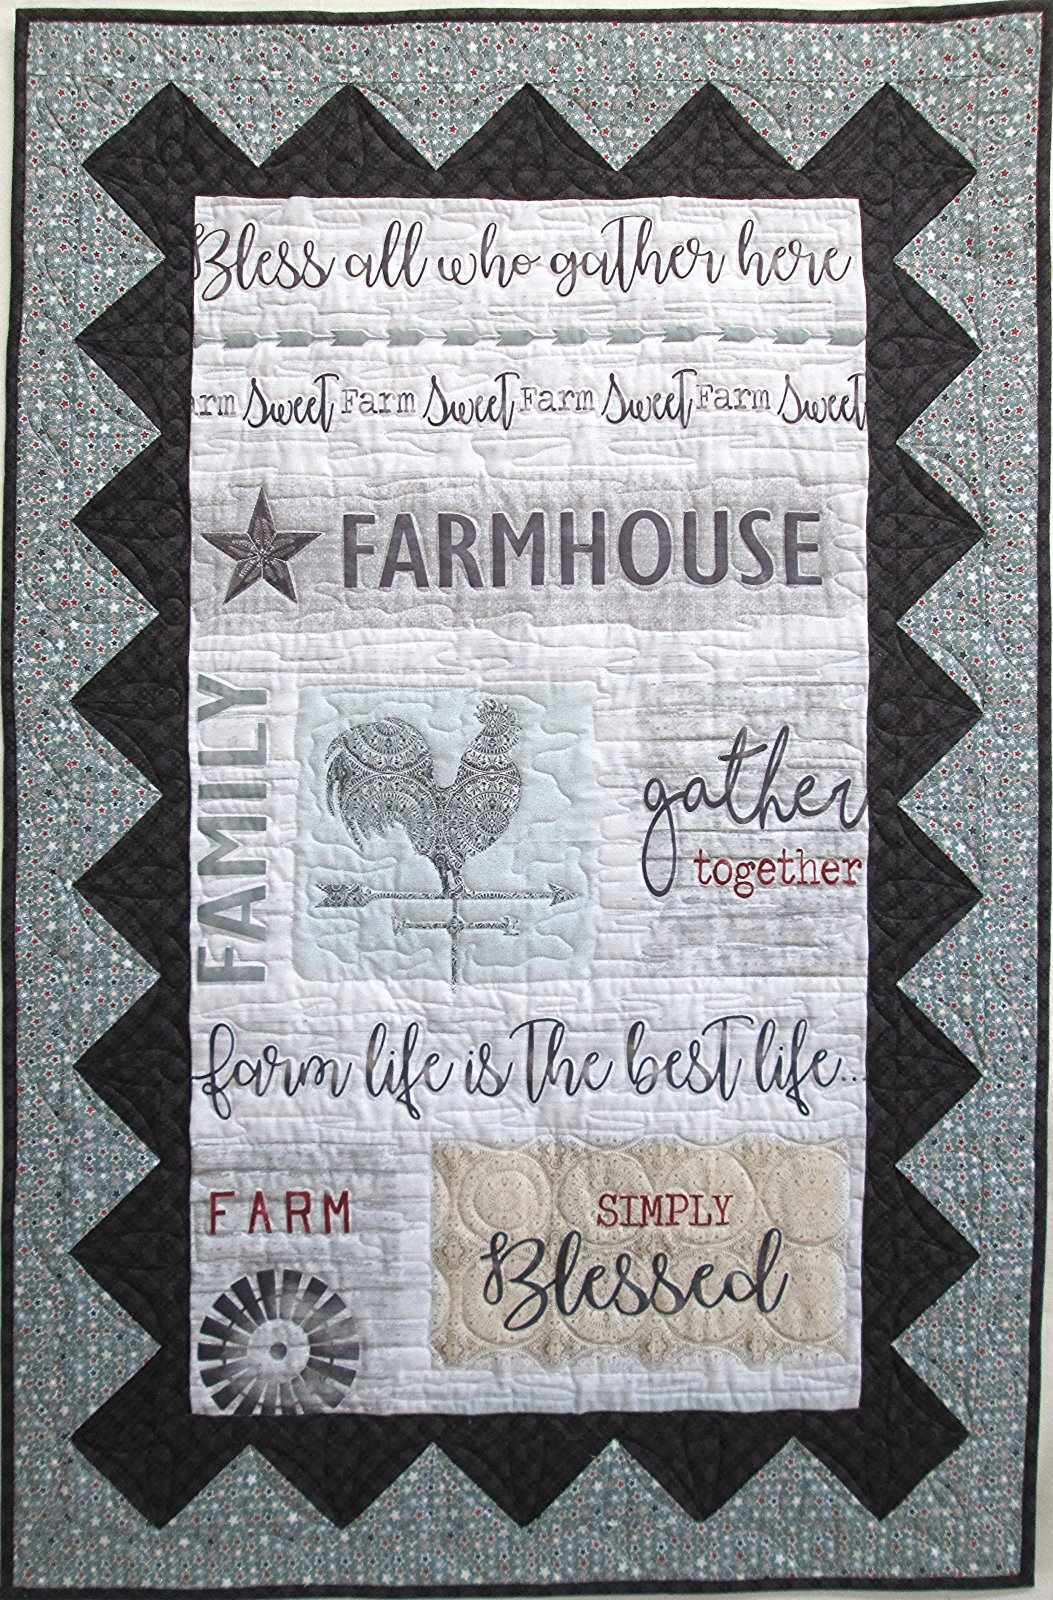 Farm Sweet Farm Wall Hanging or Quilt Finished Sample